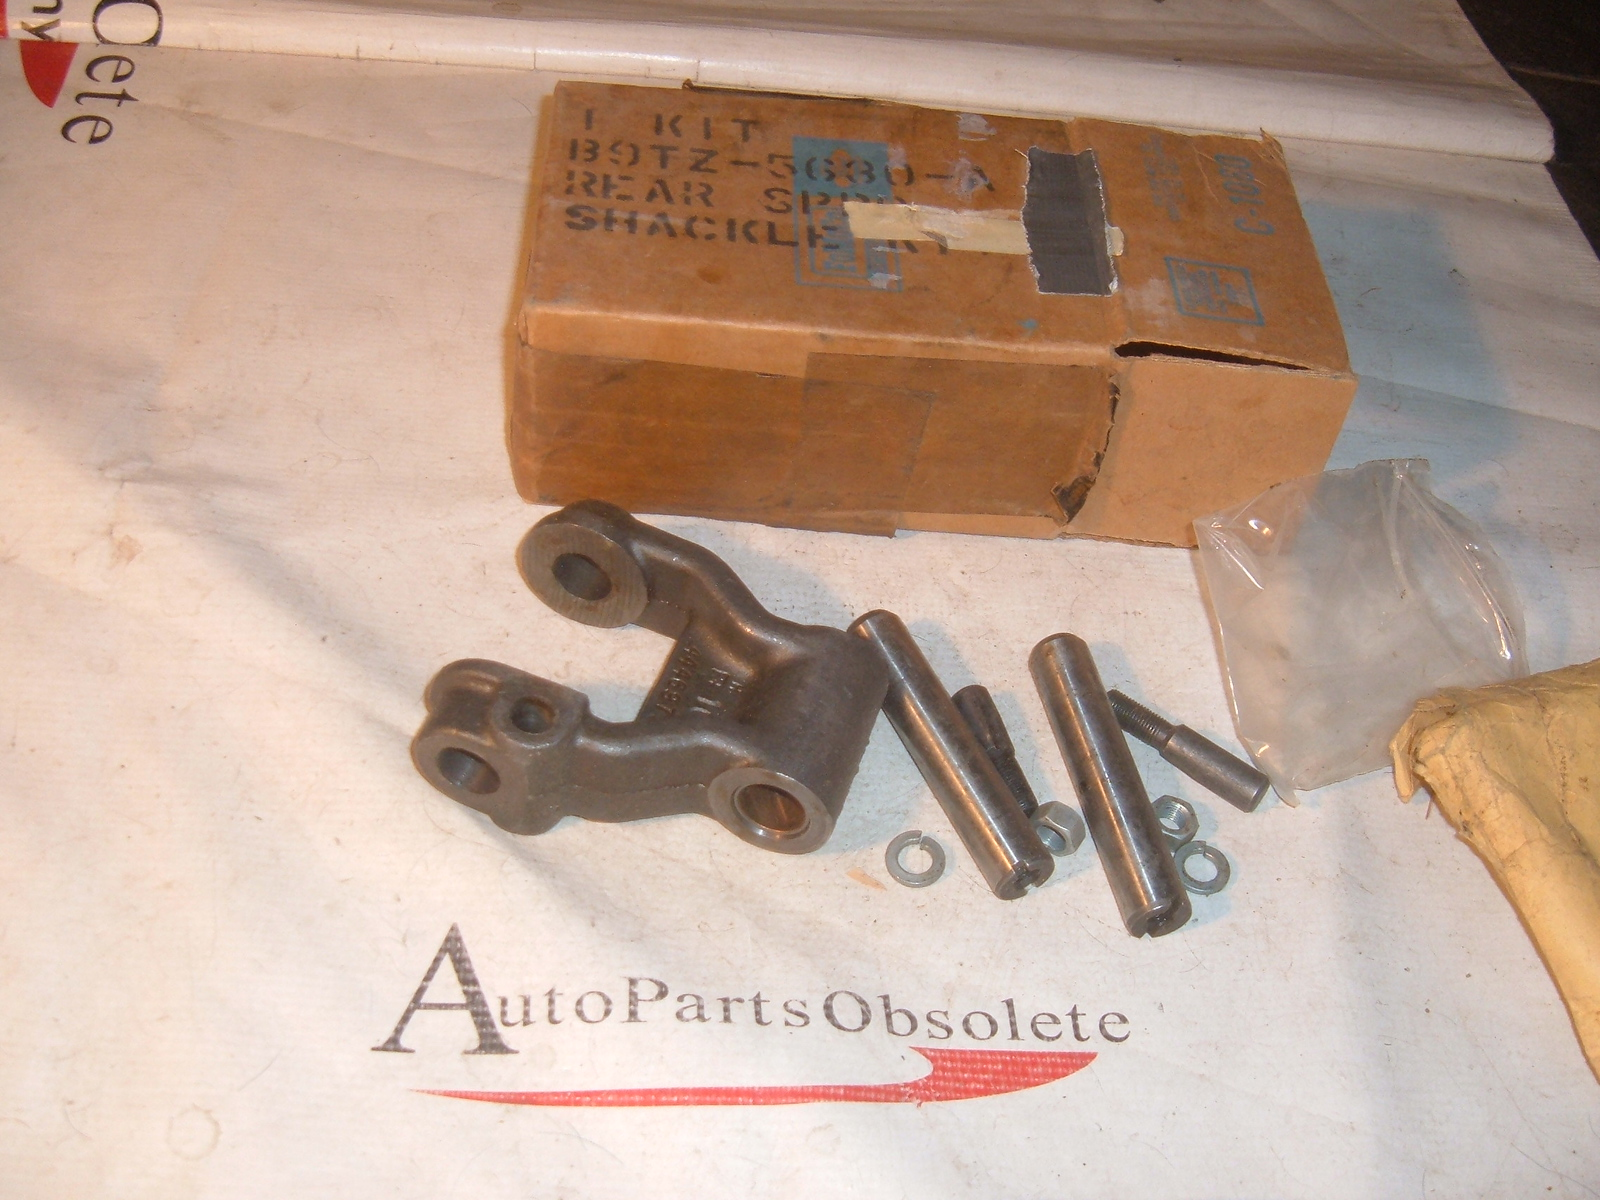 View Product1959 60 ford truck rear spring shackle NOS ford # B9TZ-5630-A (z b9tz5630a)